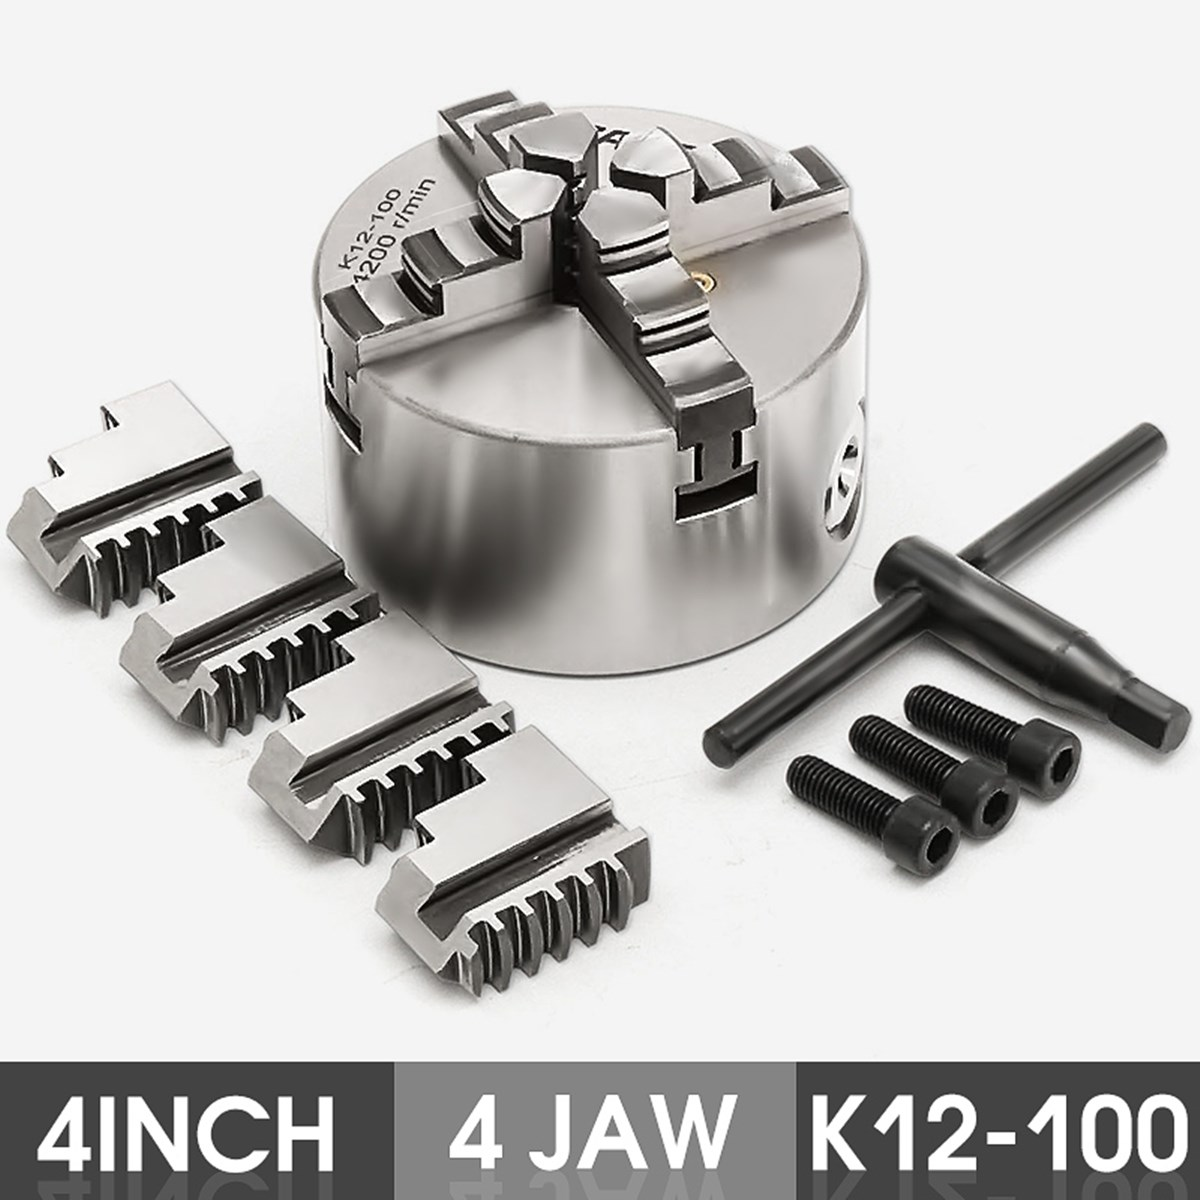 4 Jaw K12-100 4'' Lathe Chuck Self Centering Hardened Steel CNC Drilling Milling with Wrench and Screws Hardened Steel heat assisted machining of hardened steel aisi h13